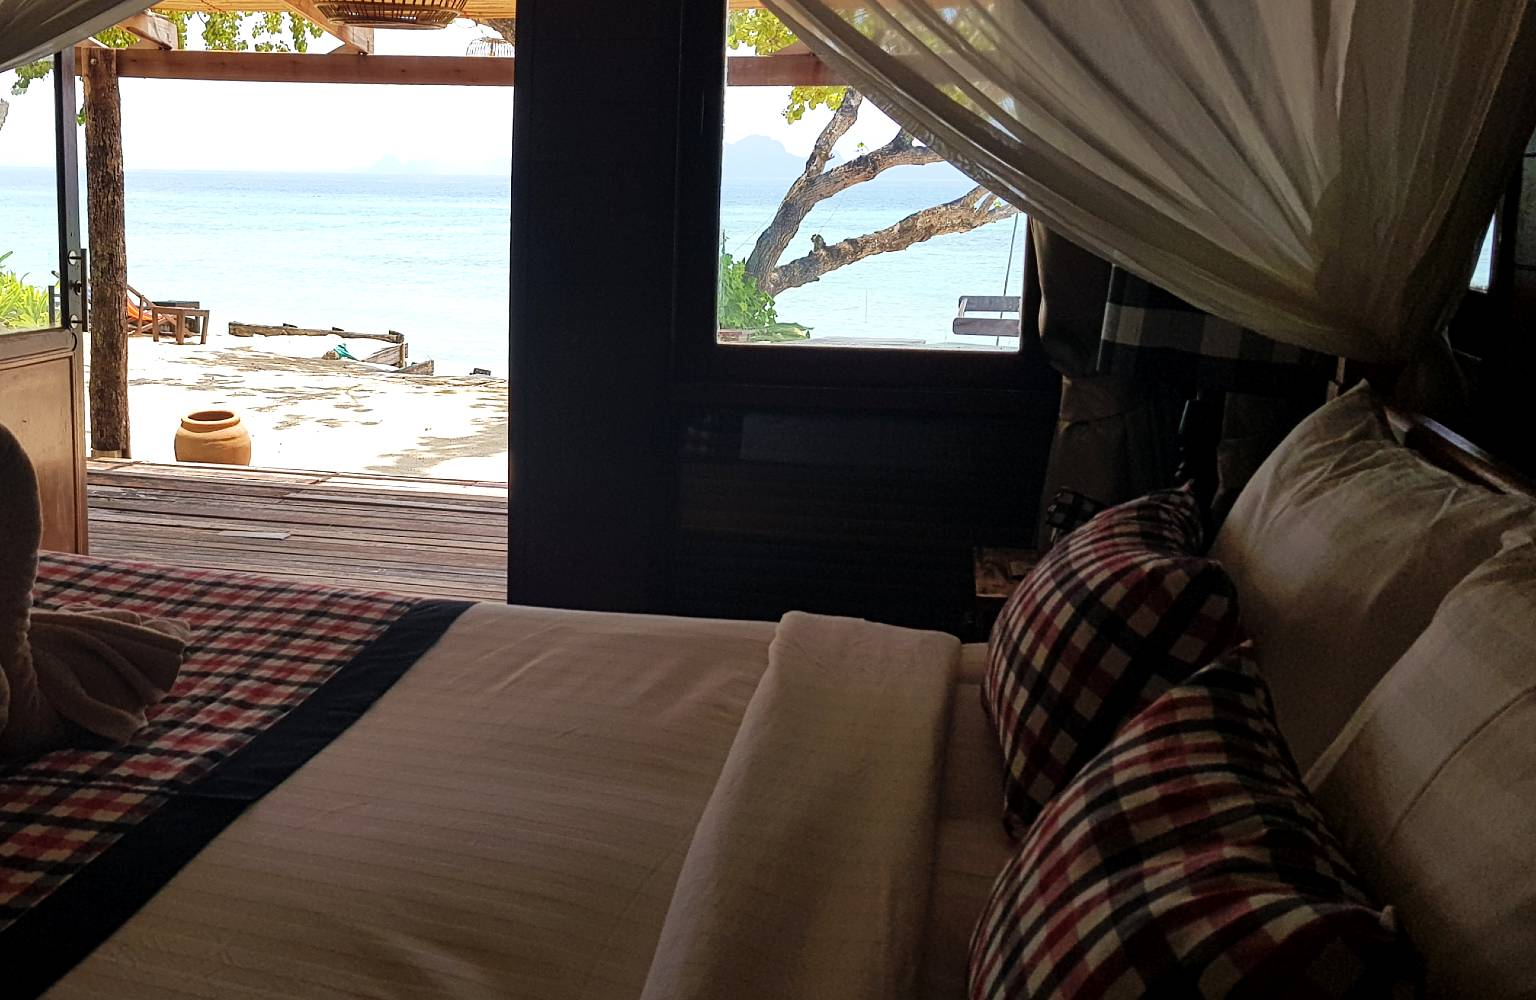 View of the beach and sea from the bungalow at Thapwarin Resort in Koh Ngai